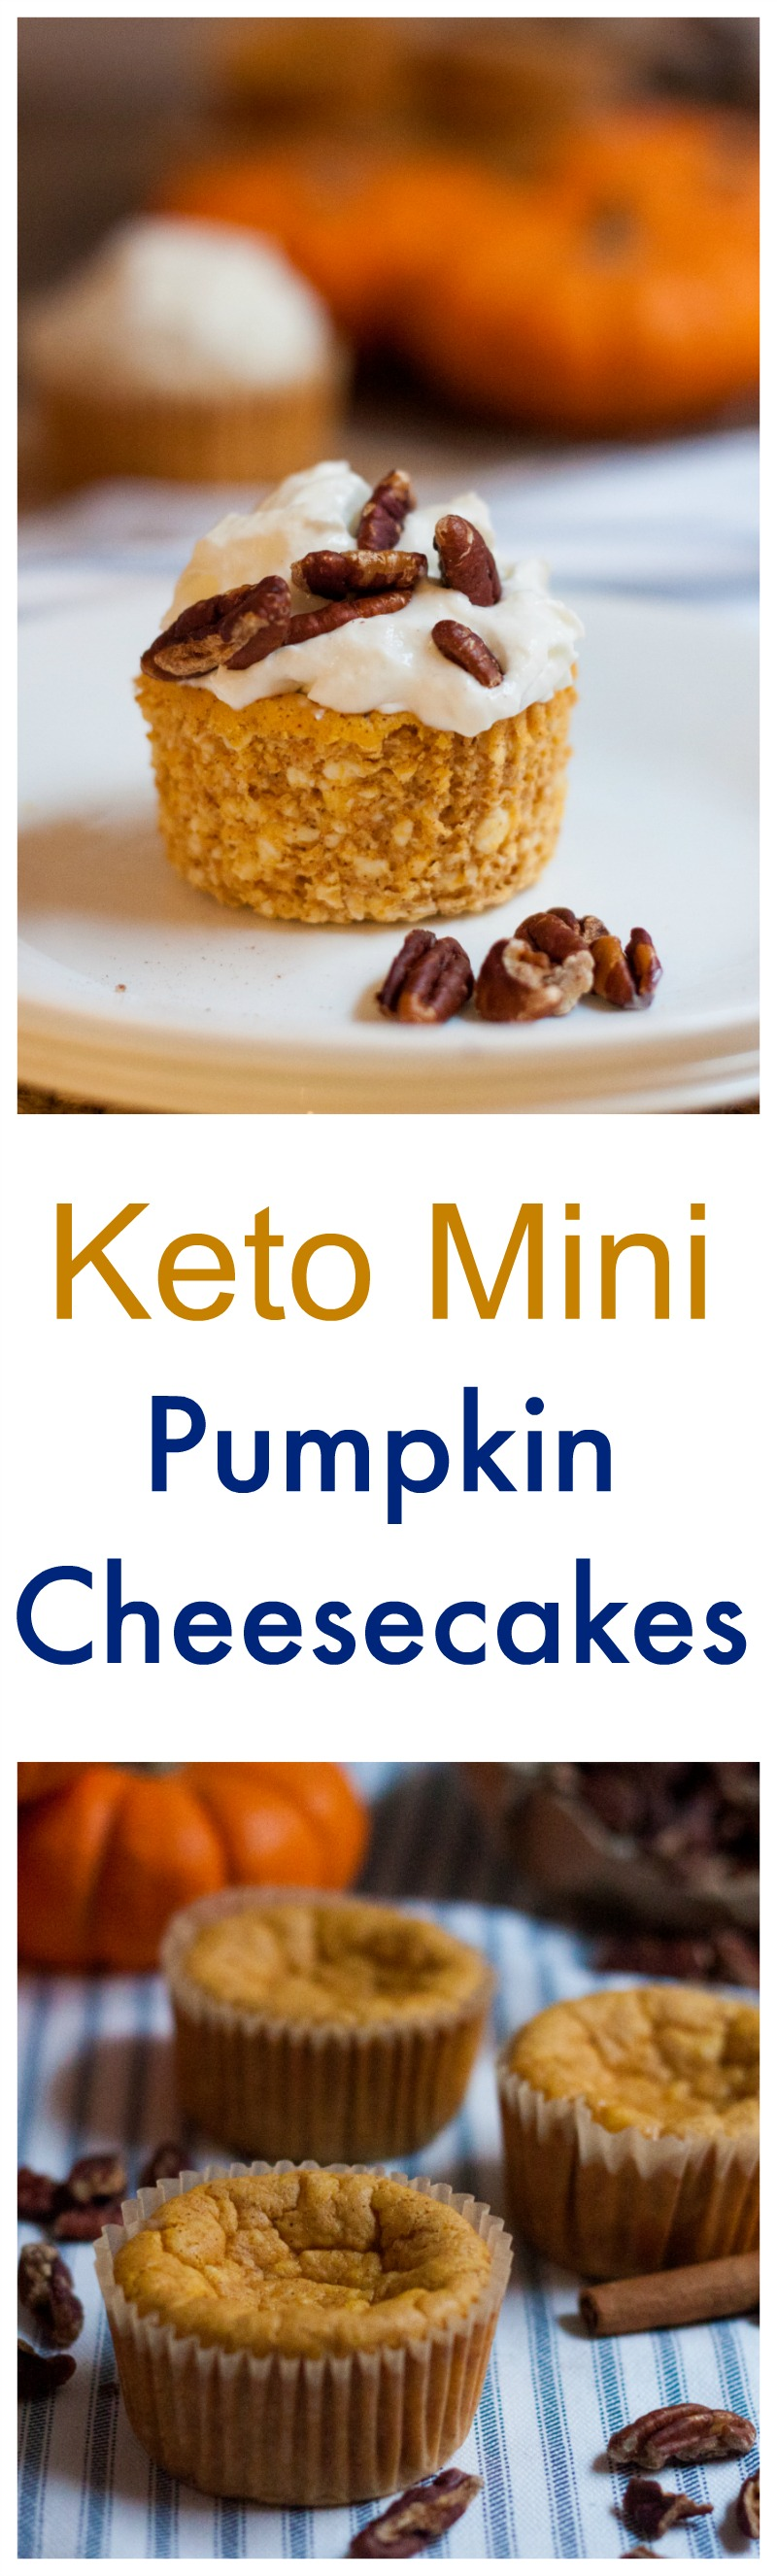 Make our Mini Keto Pumpkin Cheesecake Recipe for the holidays this year! Delicious, classic pumpkin flavor, without all of the carbs!